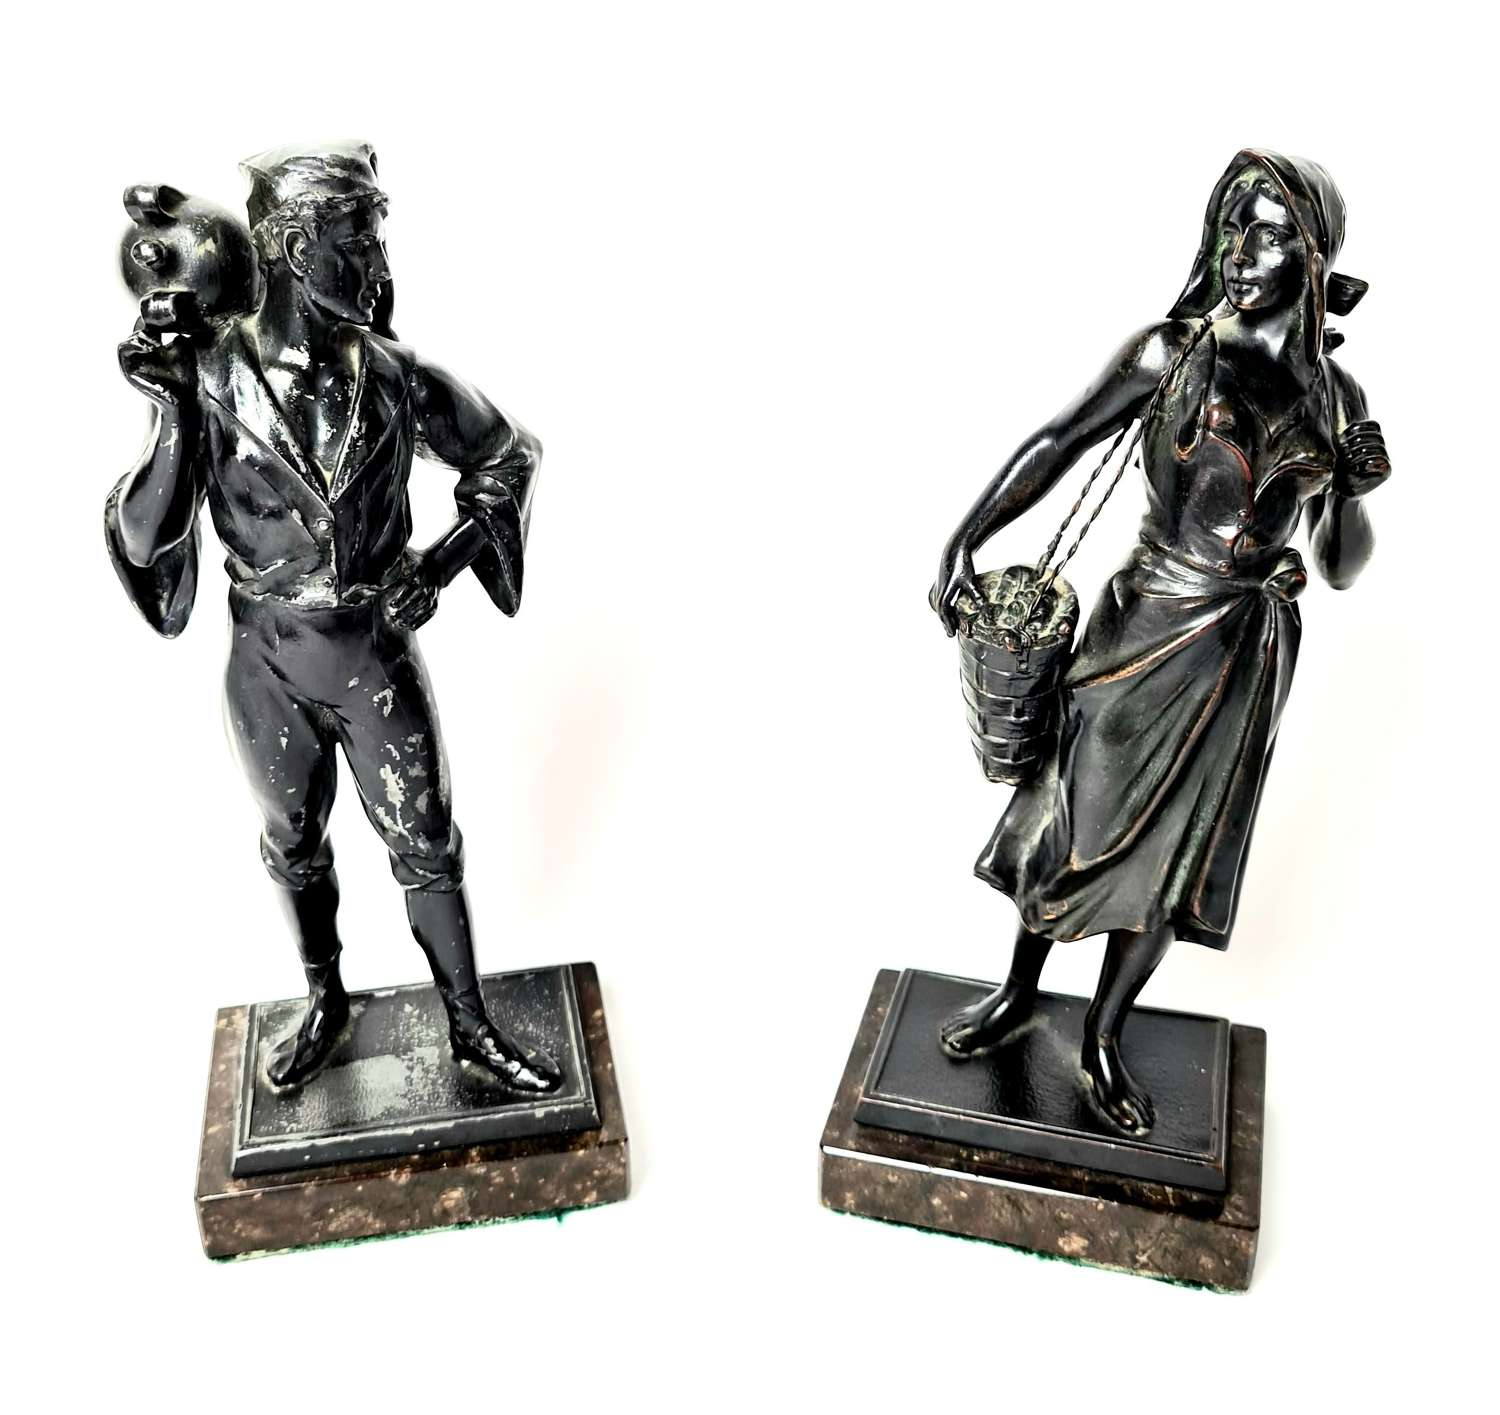 A Pair of Figures 'Street Scenes'